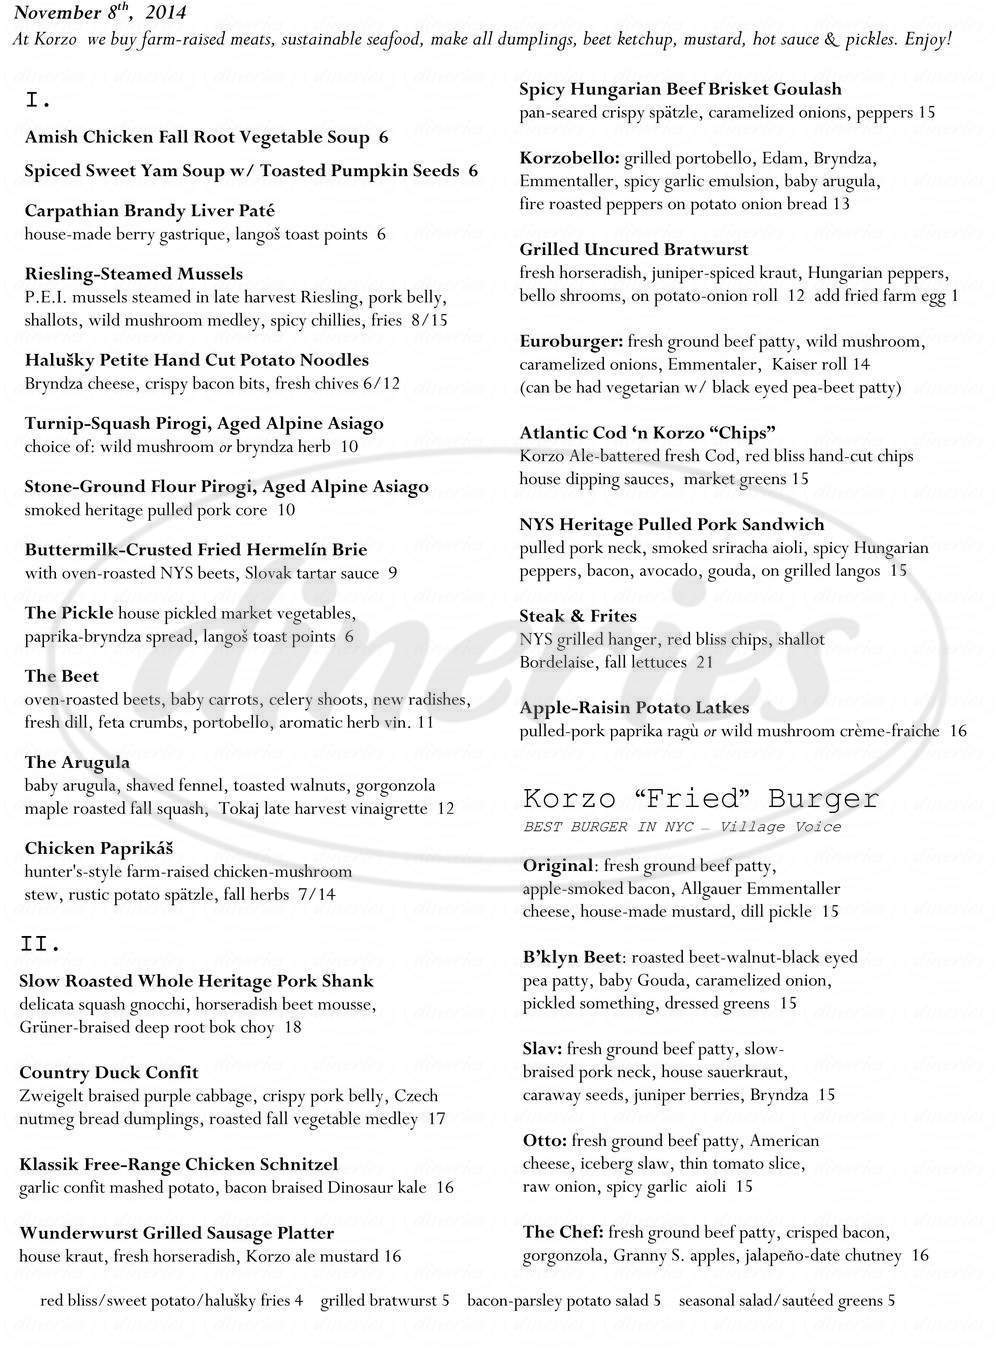 menu for Korzo Haus